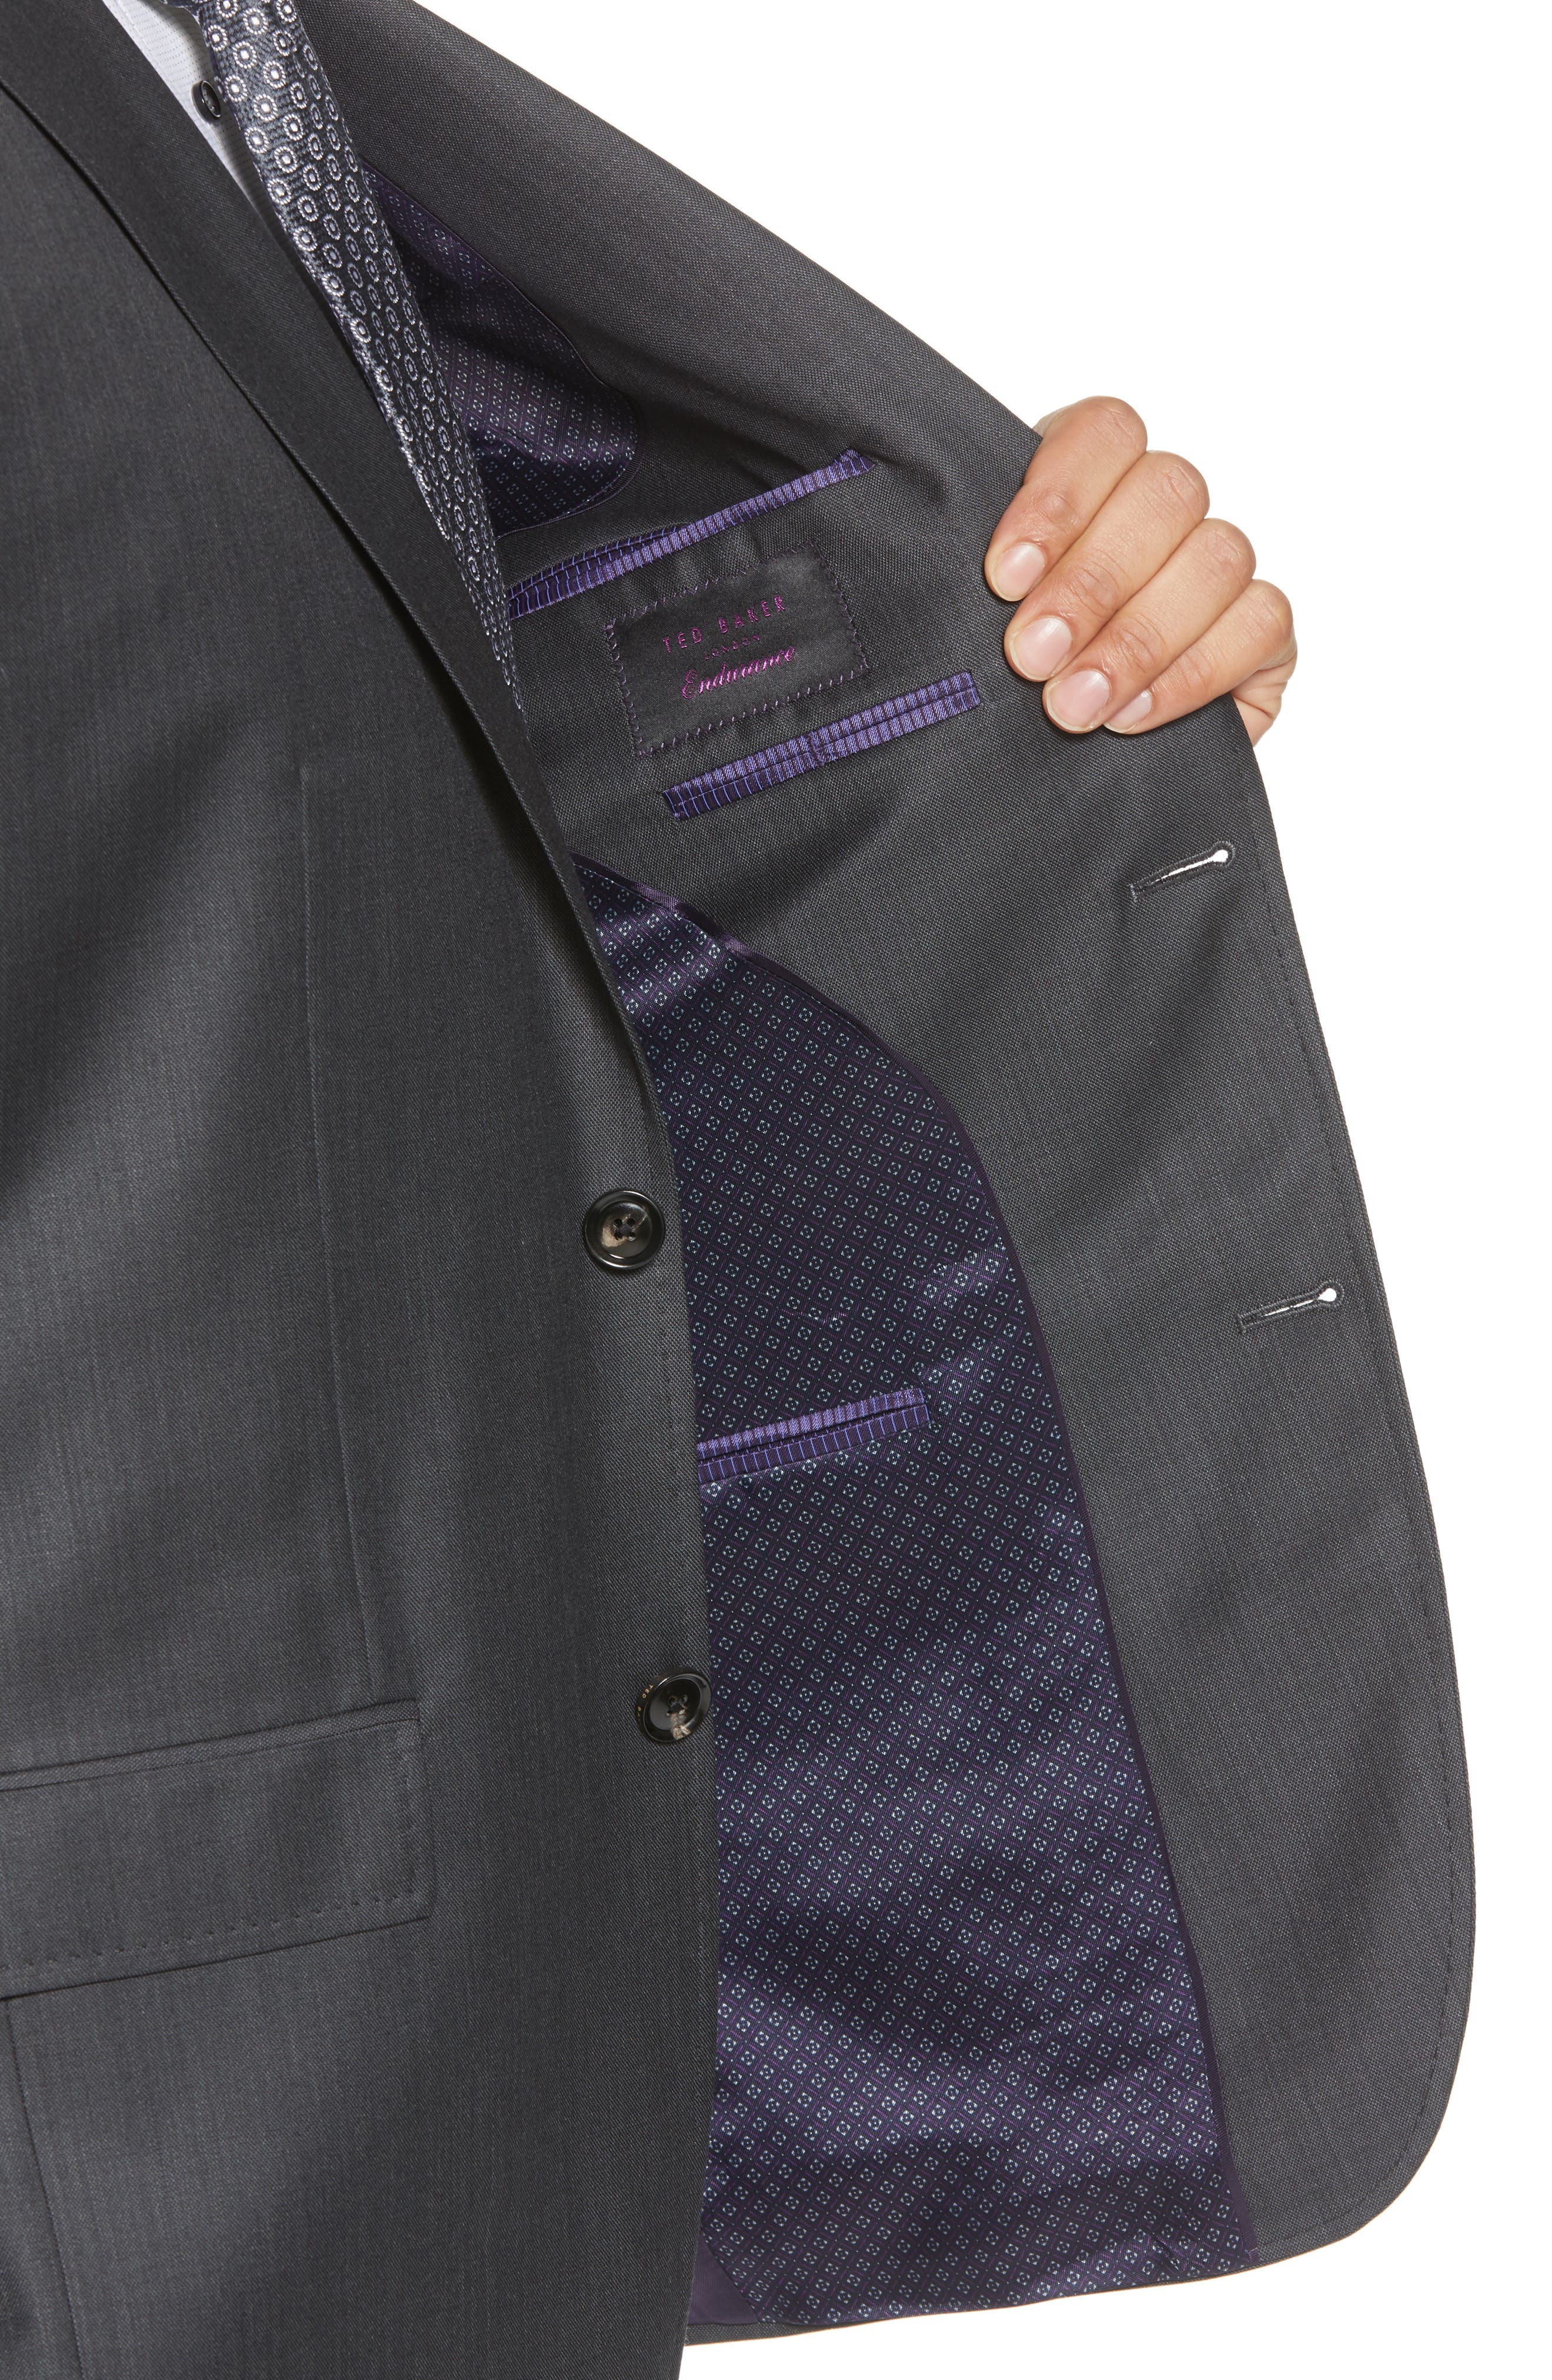 'Jay' Trim Fit Solid Wool Suit,                             Alternate thumbnail 4, color,                             Charcoal